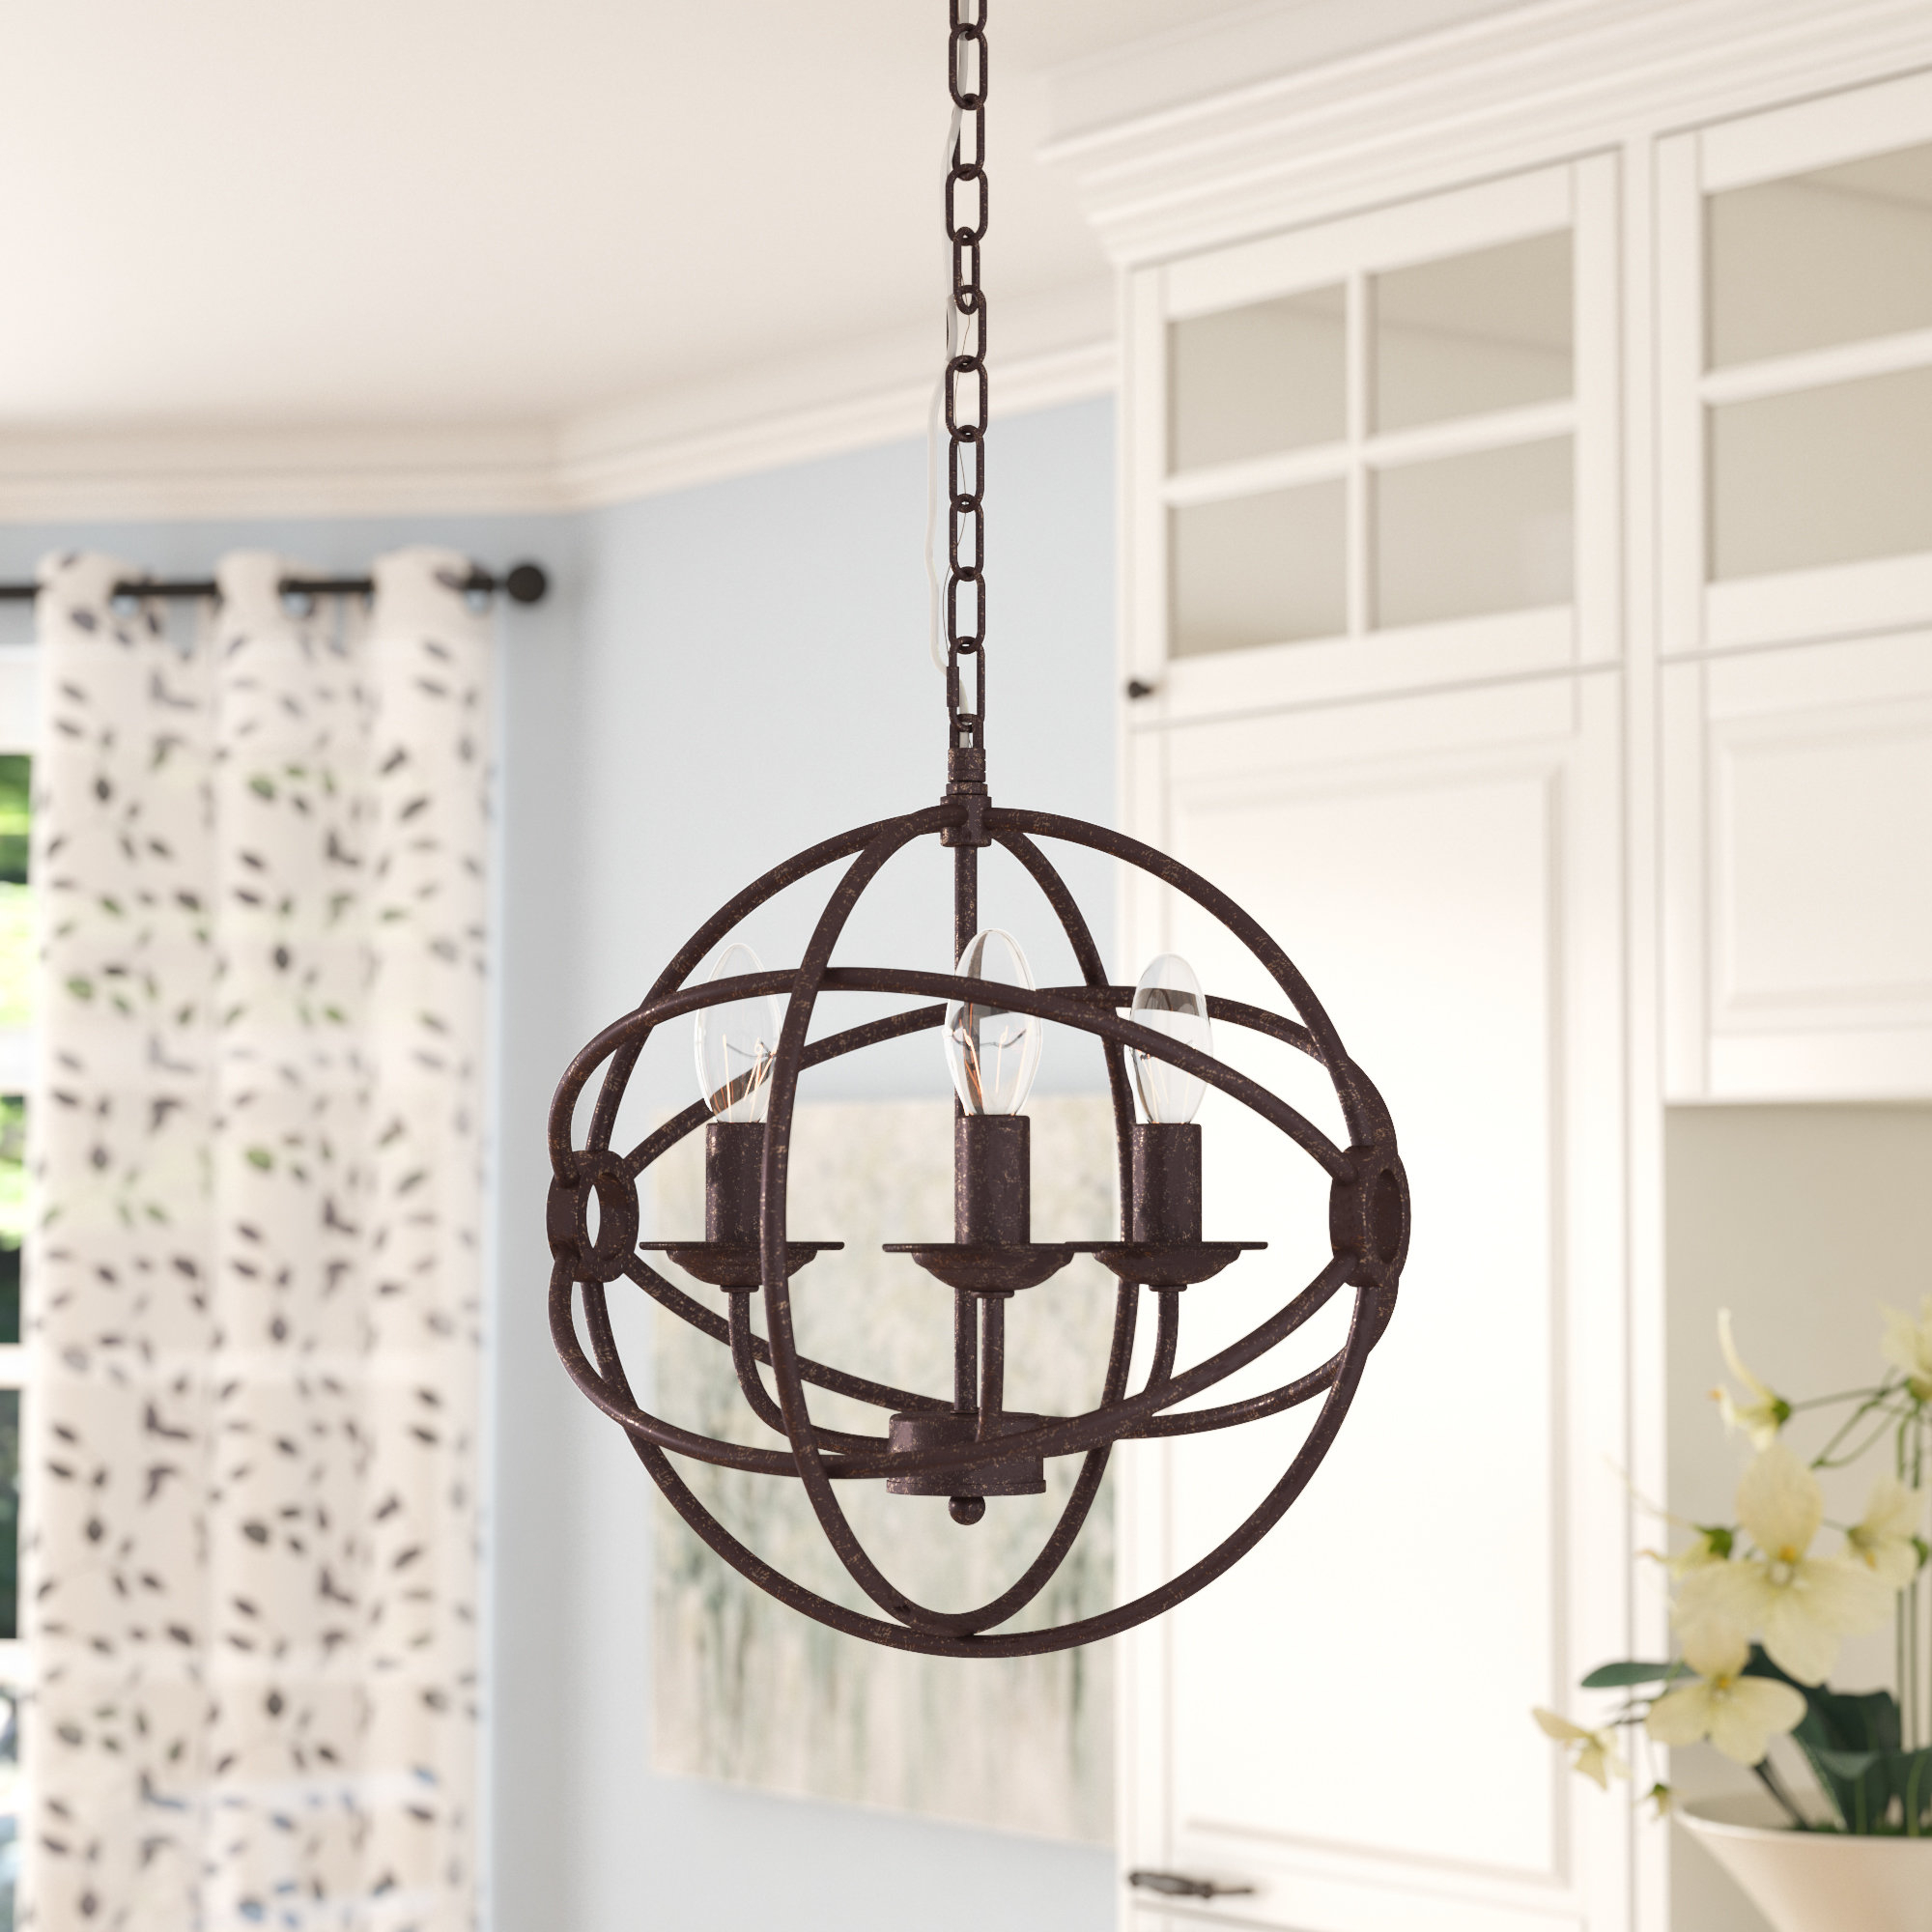 [%Globe Chandeliers Sale – Up To 65% Off Until September 30Th With Well Known Filipe Globe Chandeliers|Filipe Globe Chandeliers Intended For Newest Globe Chandeliers Sale – Up To 65% Off Until September 30Th|Well Liked Filipe Globe Chandeliers Regarding Globe Chandeliers Sale – Up To 65% Off Until September 30Th|Most Recently Released Globe Chandeliers Sale – Up To 65% Off Until September 30Th In Filipe Globe Chandeliers%] (View 1 of 20)